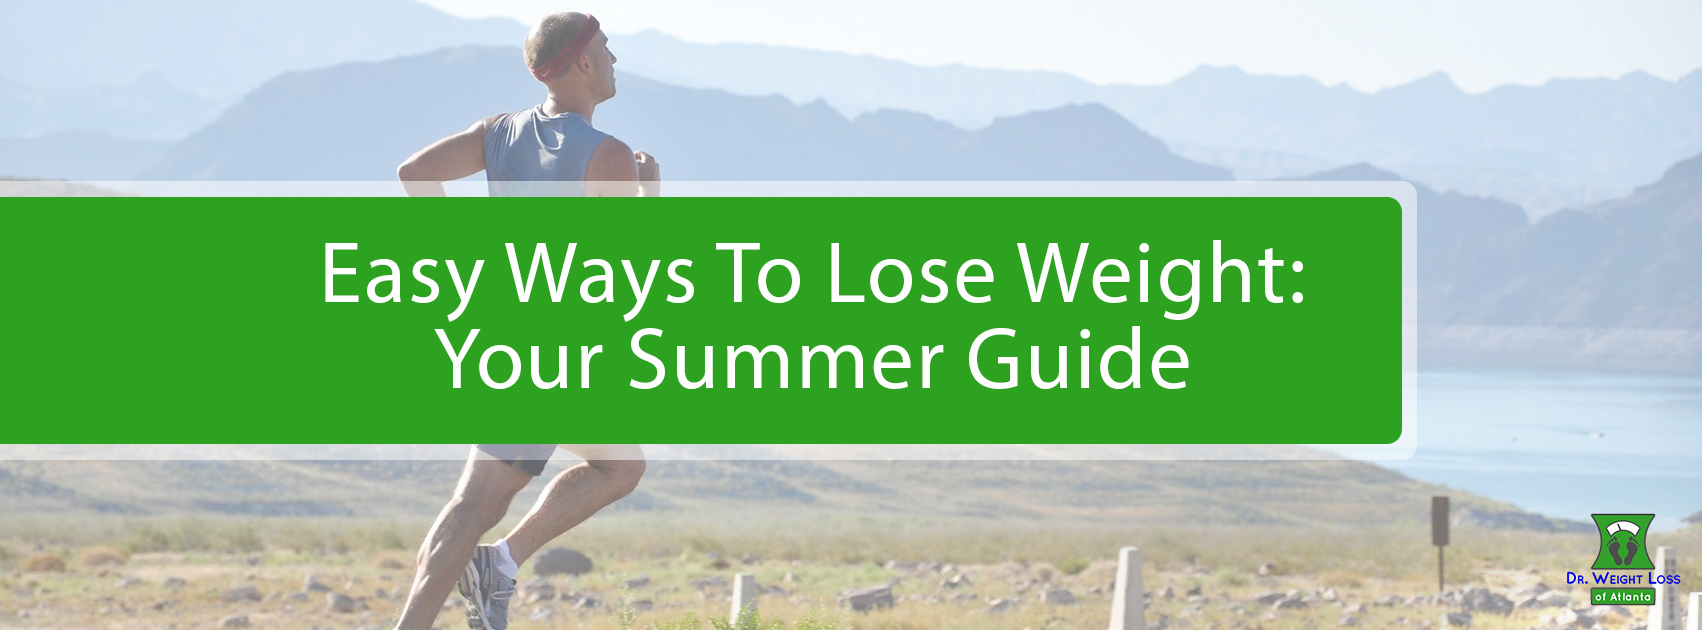 Easy Ways To Lose Weight This Summer